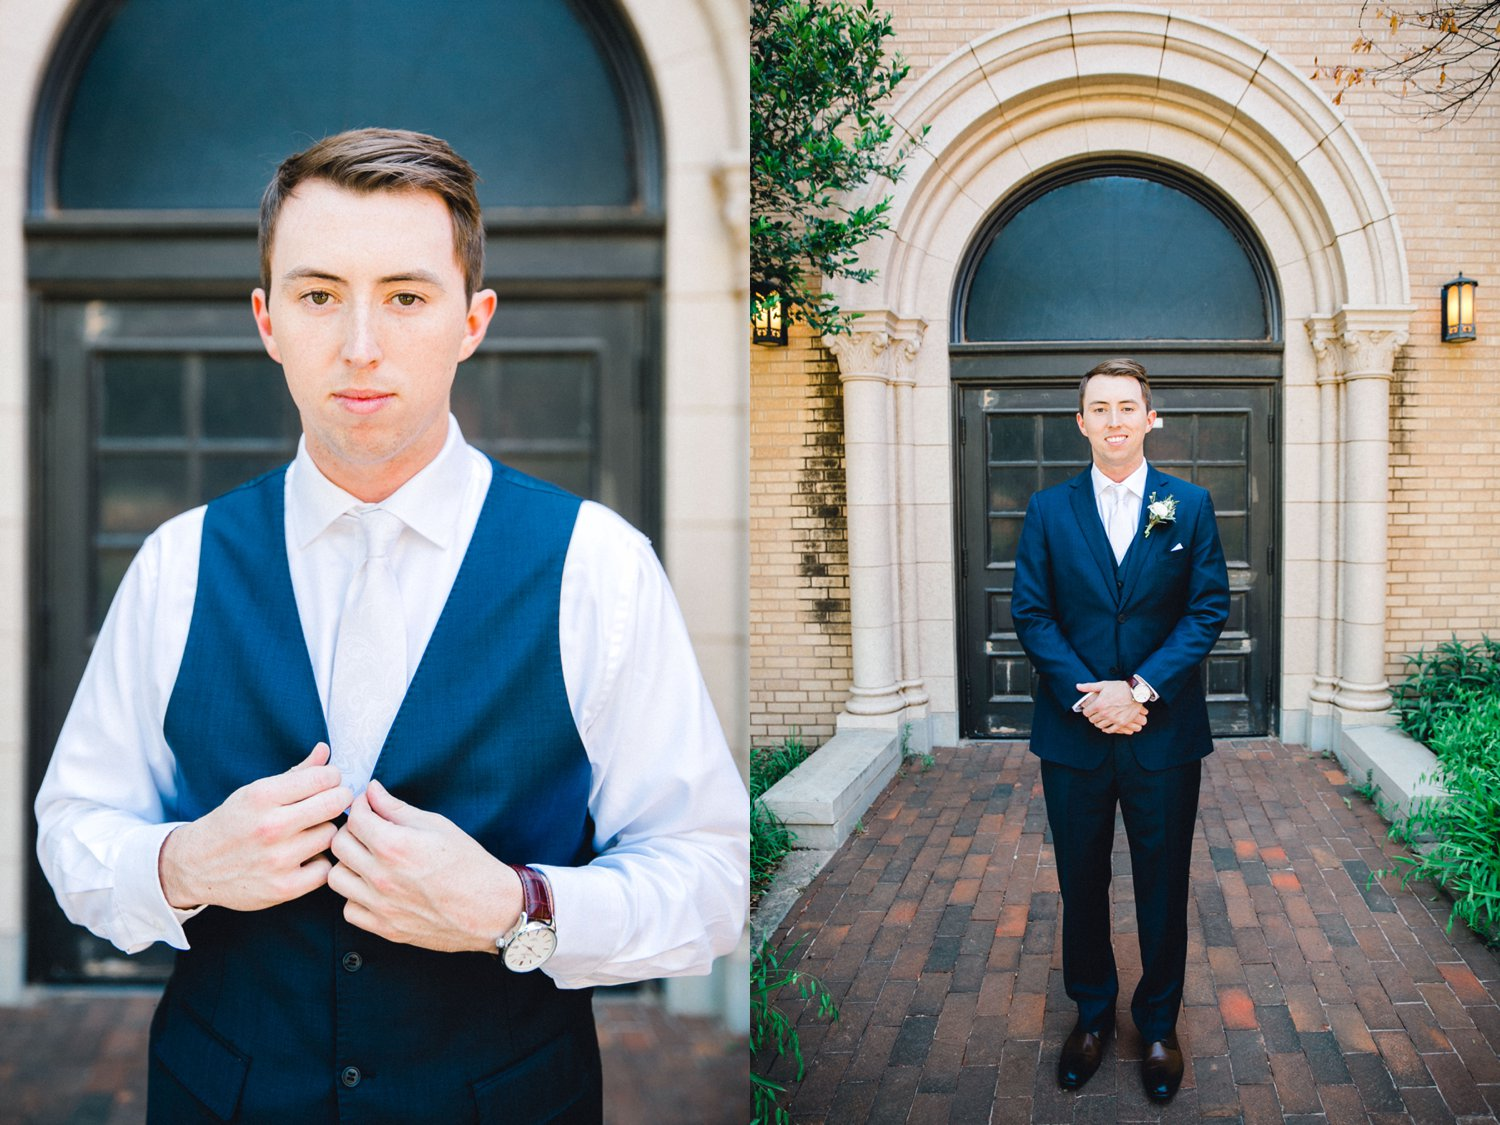 MADI_AND_WILL_STEPHENS_ALLEEJ_LUBBOCK_PHOTOGRAPHER_TEXAS+TECH+FRAZIER_ALUMNI0025.jpg